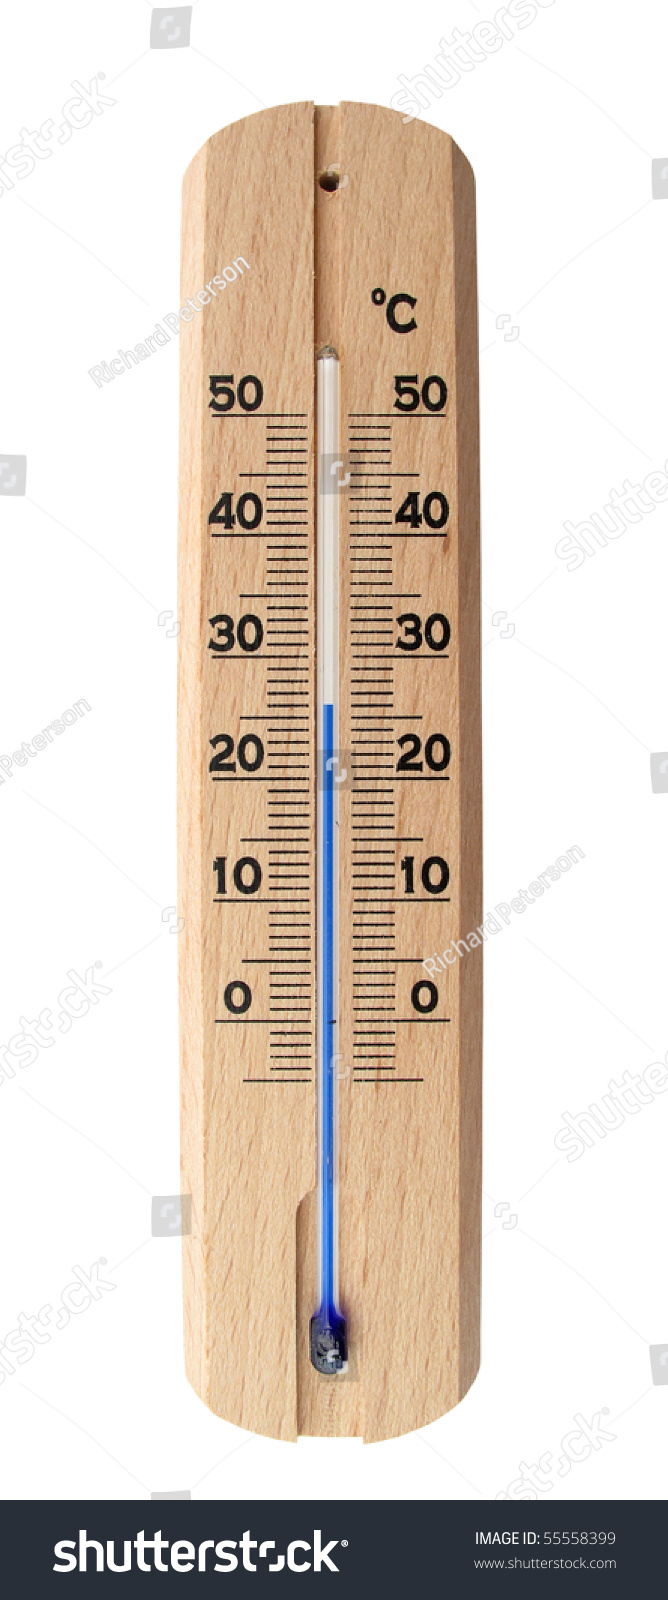 Heat Measuring Instruments : Thermometer wooden measuring instrument for temperature